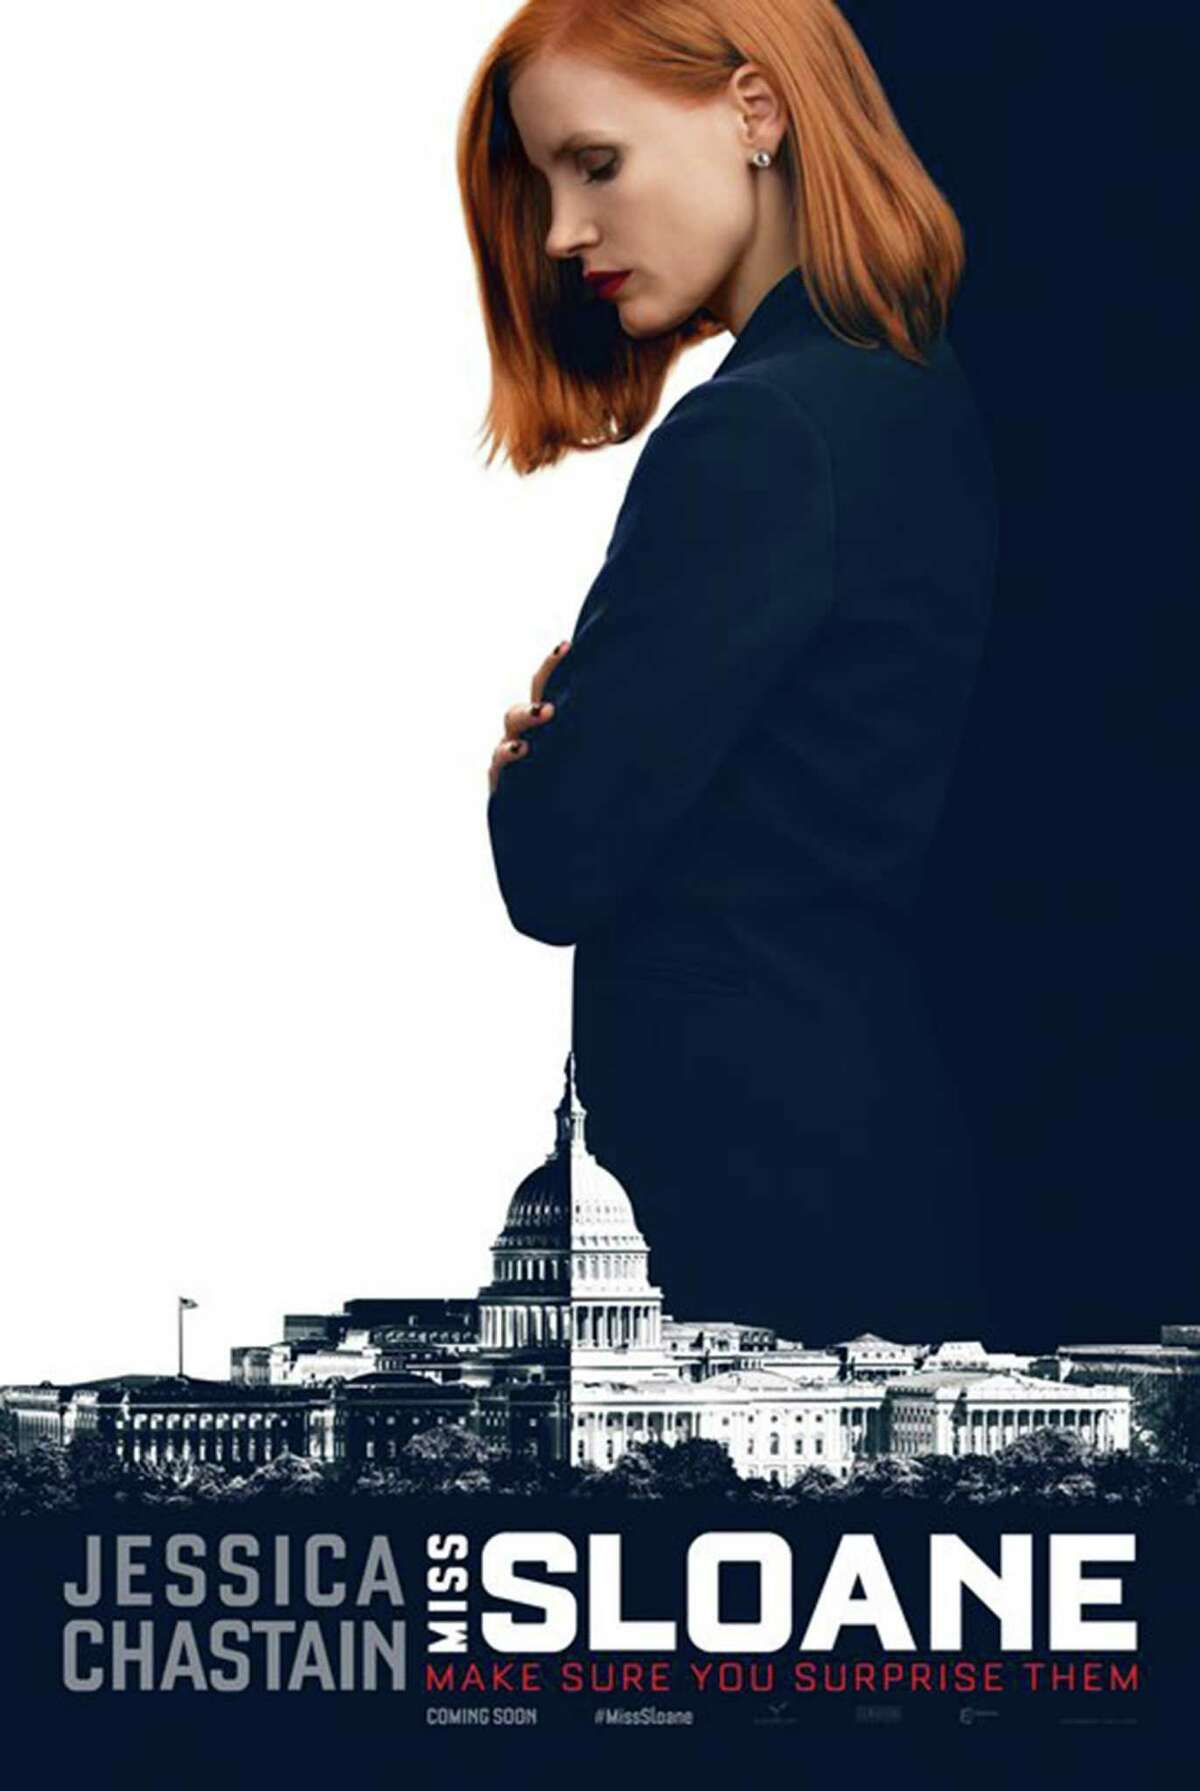 Movie: Miss Sloane Premiere date:Friday, Dec. 9 Genre:Drama, thriller About:The story of a ruthless lobbyist played by Jessica Chastain who is known for her talent and desire to always win at all costs, even when it puts her own career at risk.